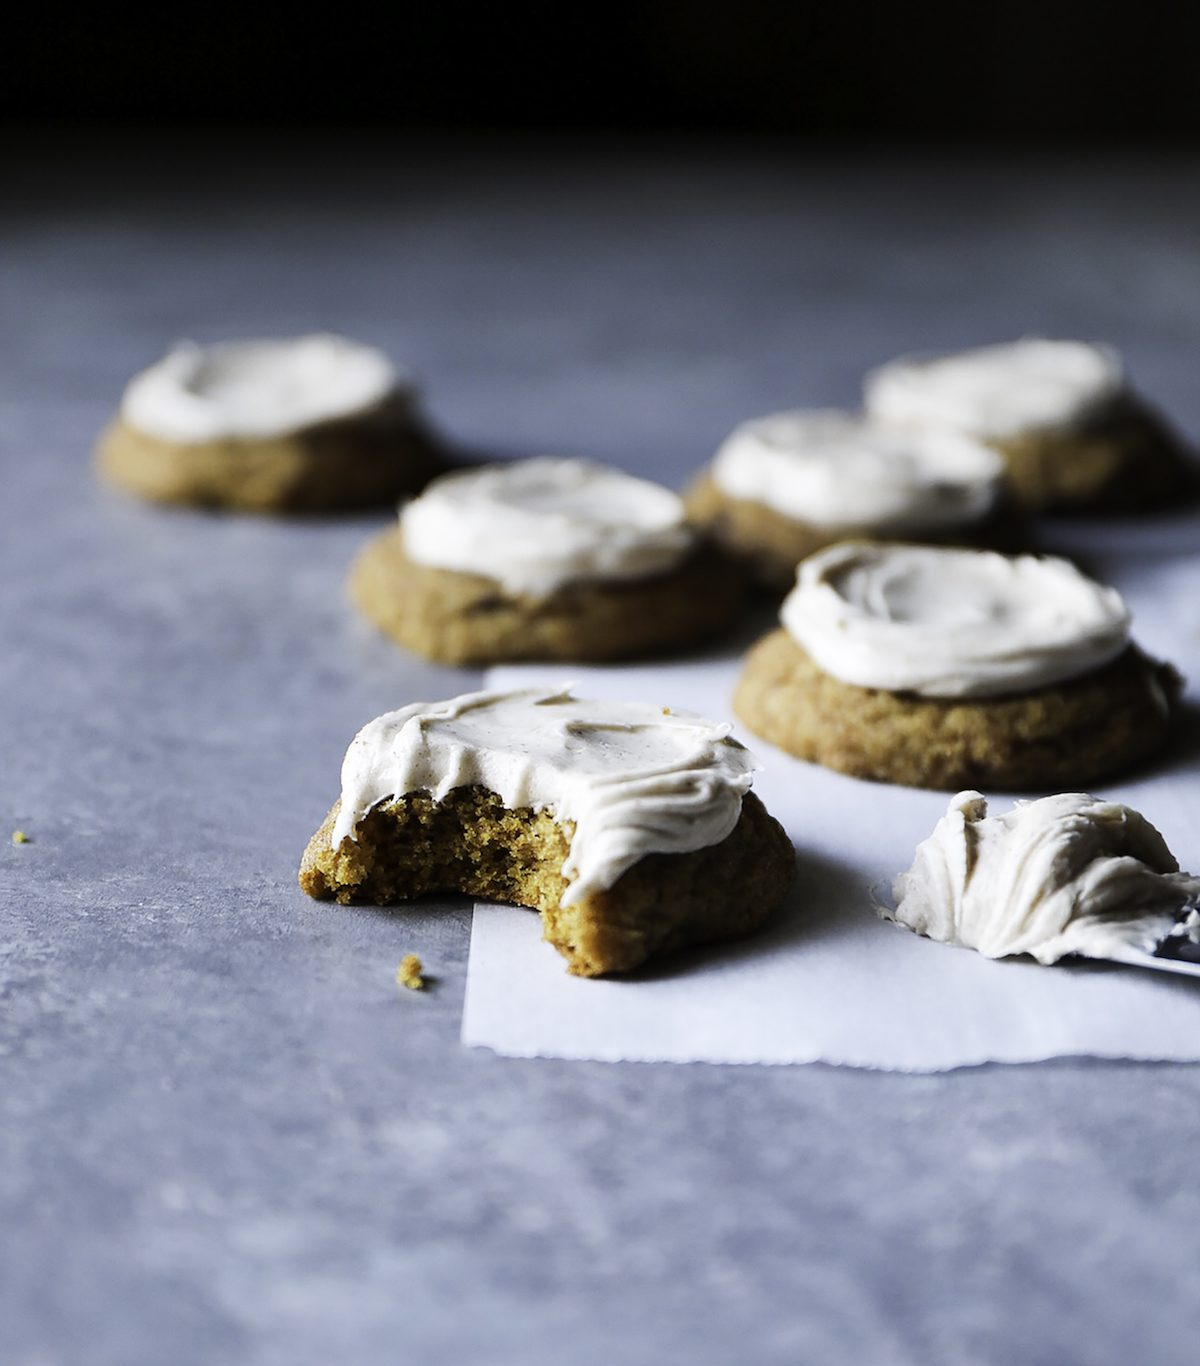 Brown Butter Pumpkin Cookies With Spice Cream Cheese Frosting Recipe from The Cookie Book by Rebecca Firth | DisplacedHousewife